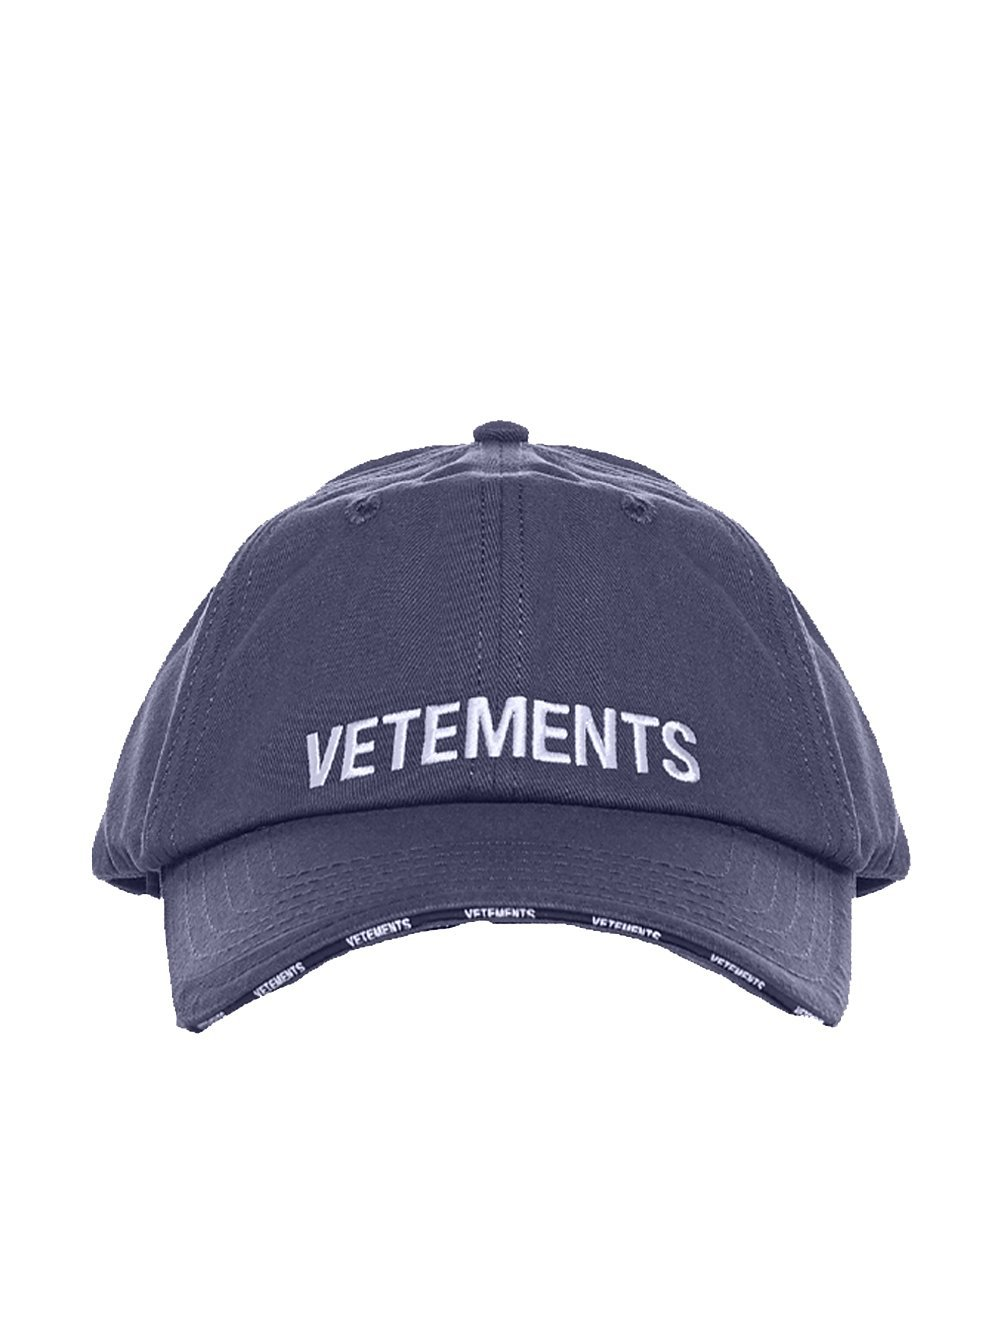 VETEMENTS Logo Cap Navy